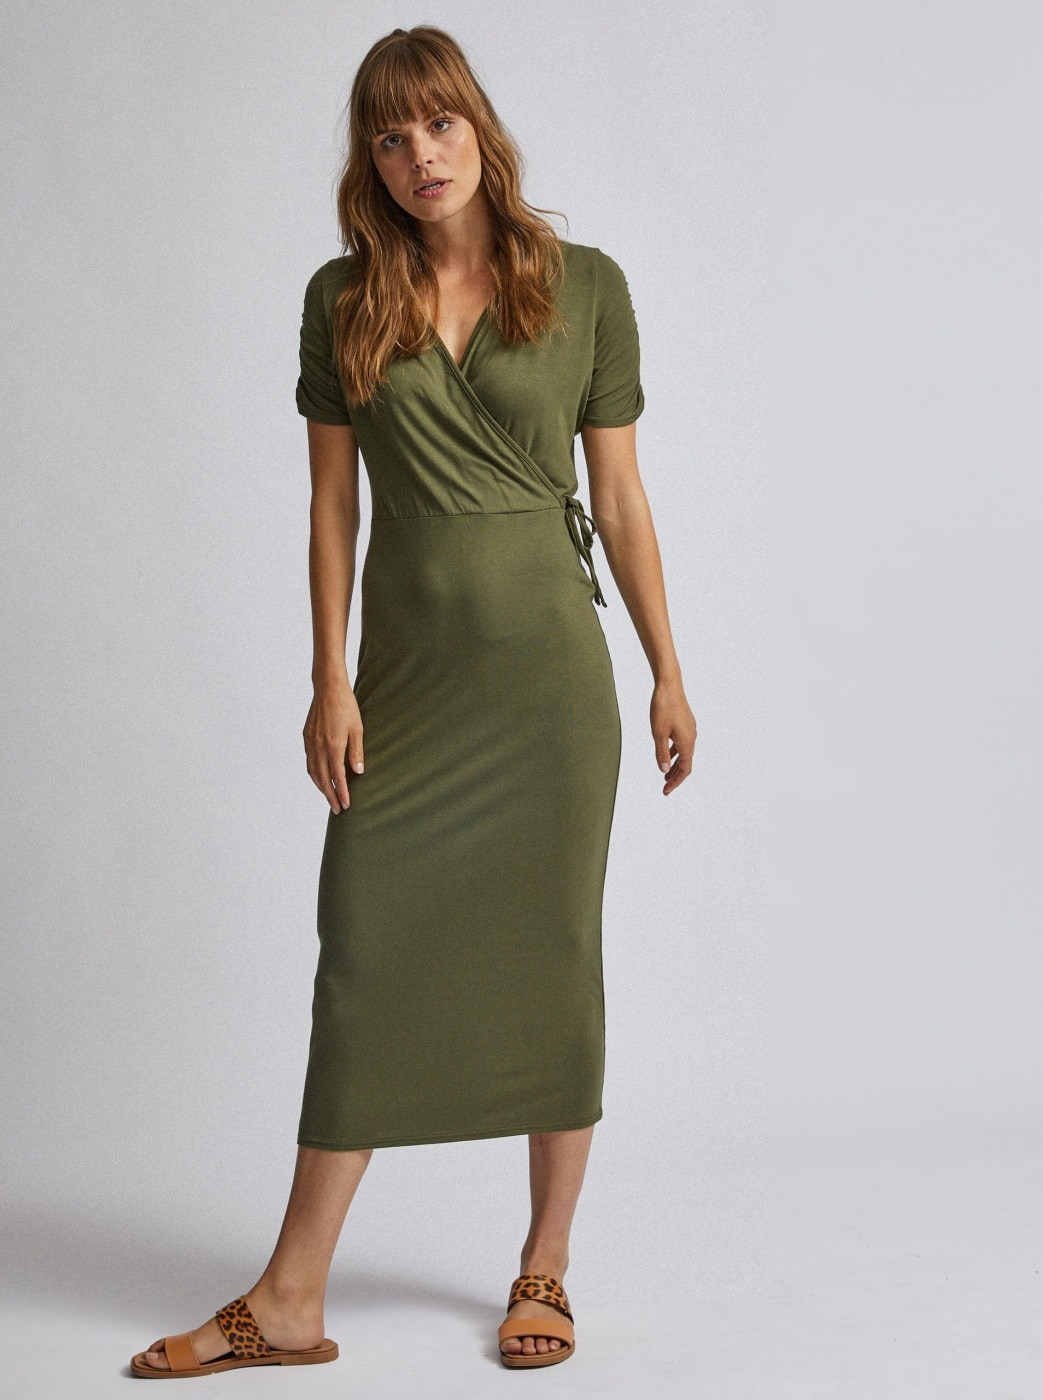 Khaki maxi dress dorothy perkins